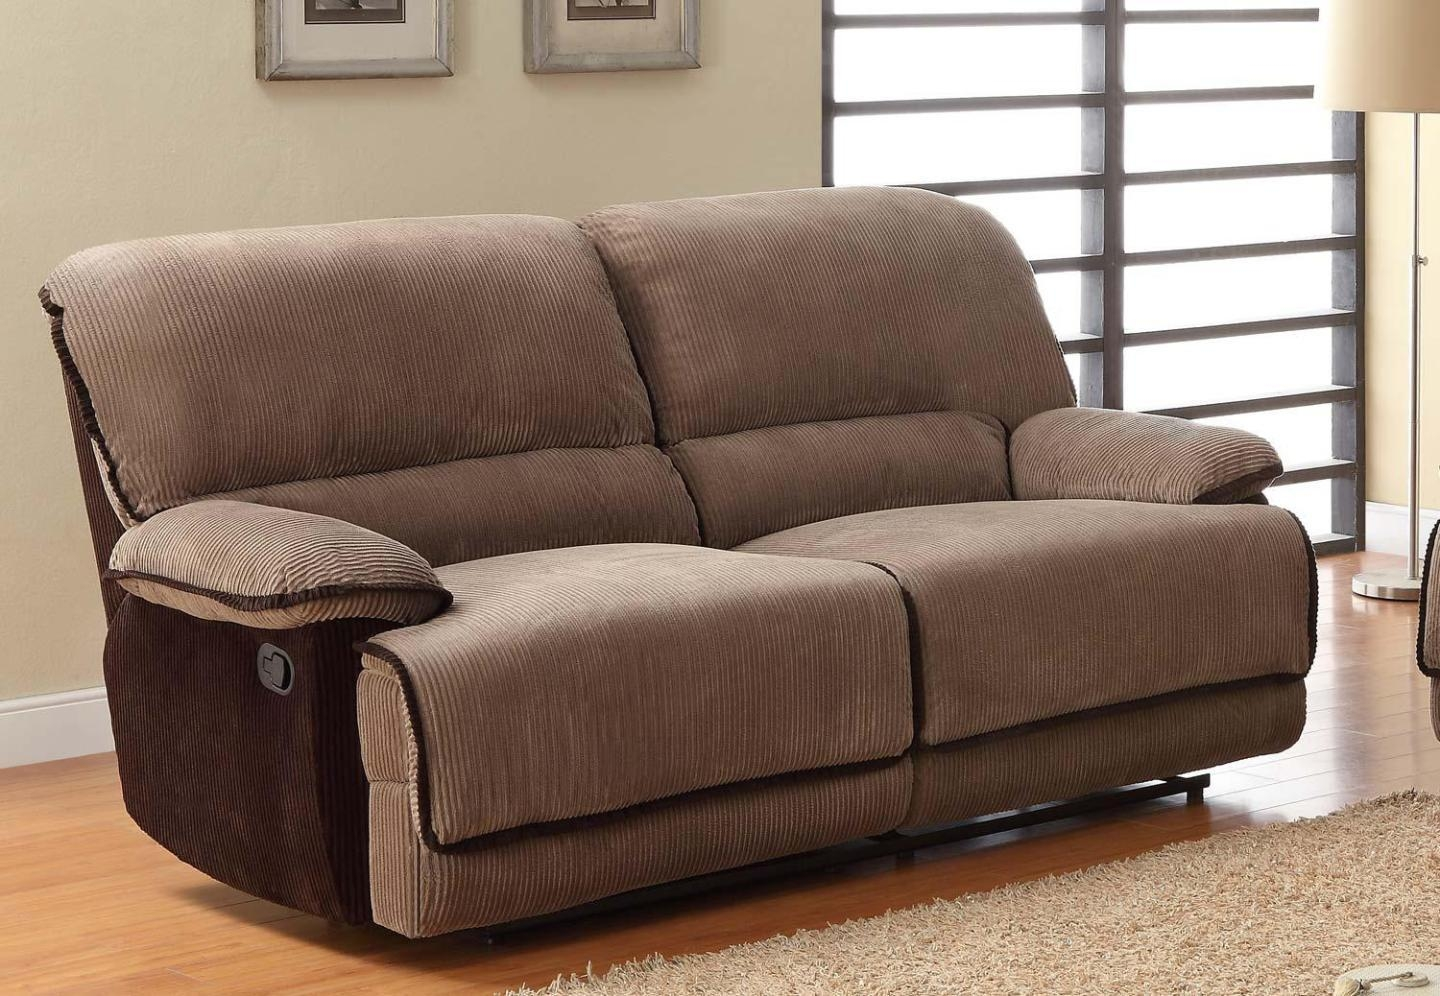 Slipcovers for reclining sofas recliner sofa slipcovers home furniture design how to find Couch and loveseat covers